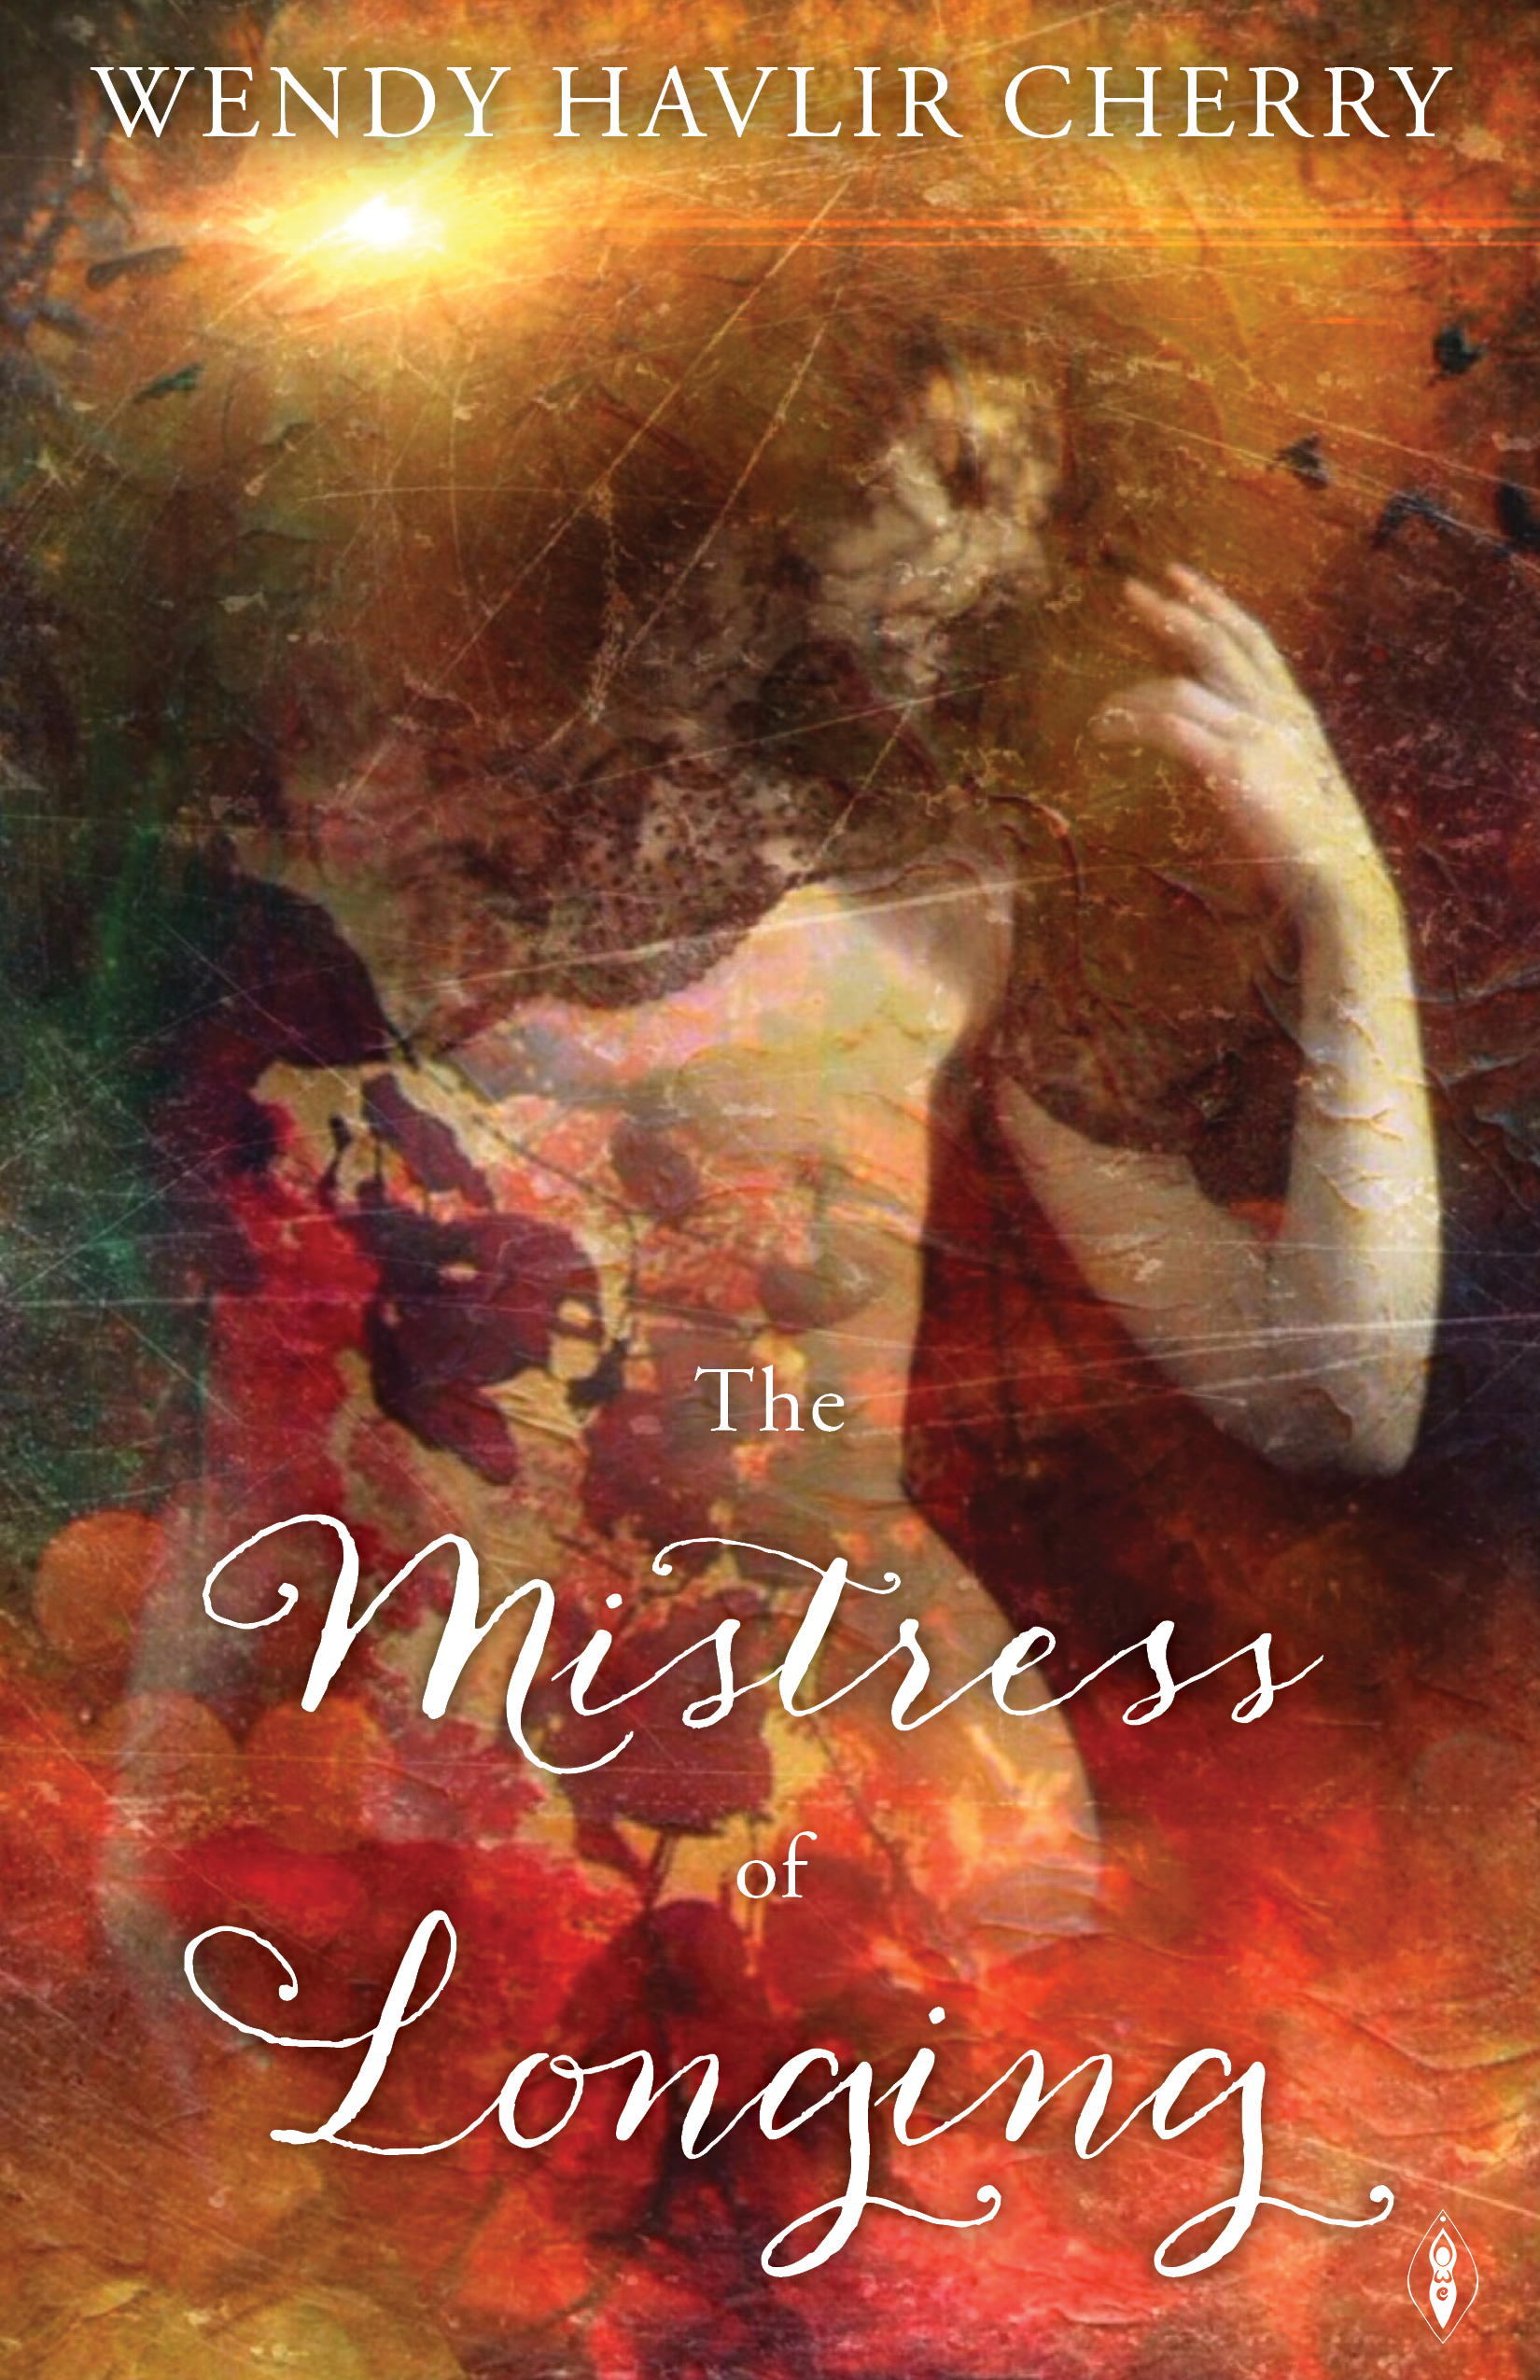 The Mistress of Longing by Wendy Havlir Cherry, Womancraft Publishing